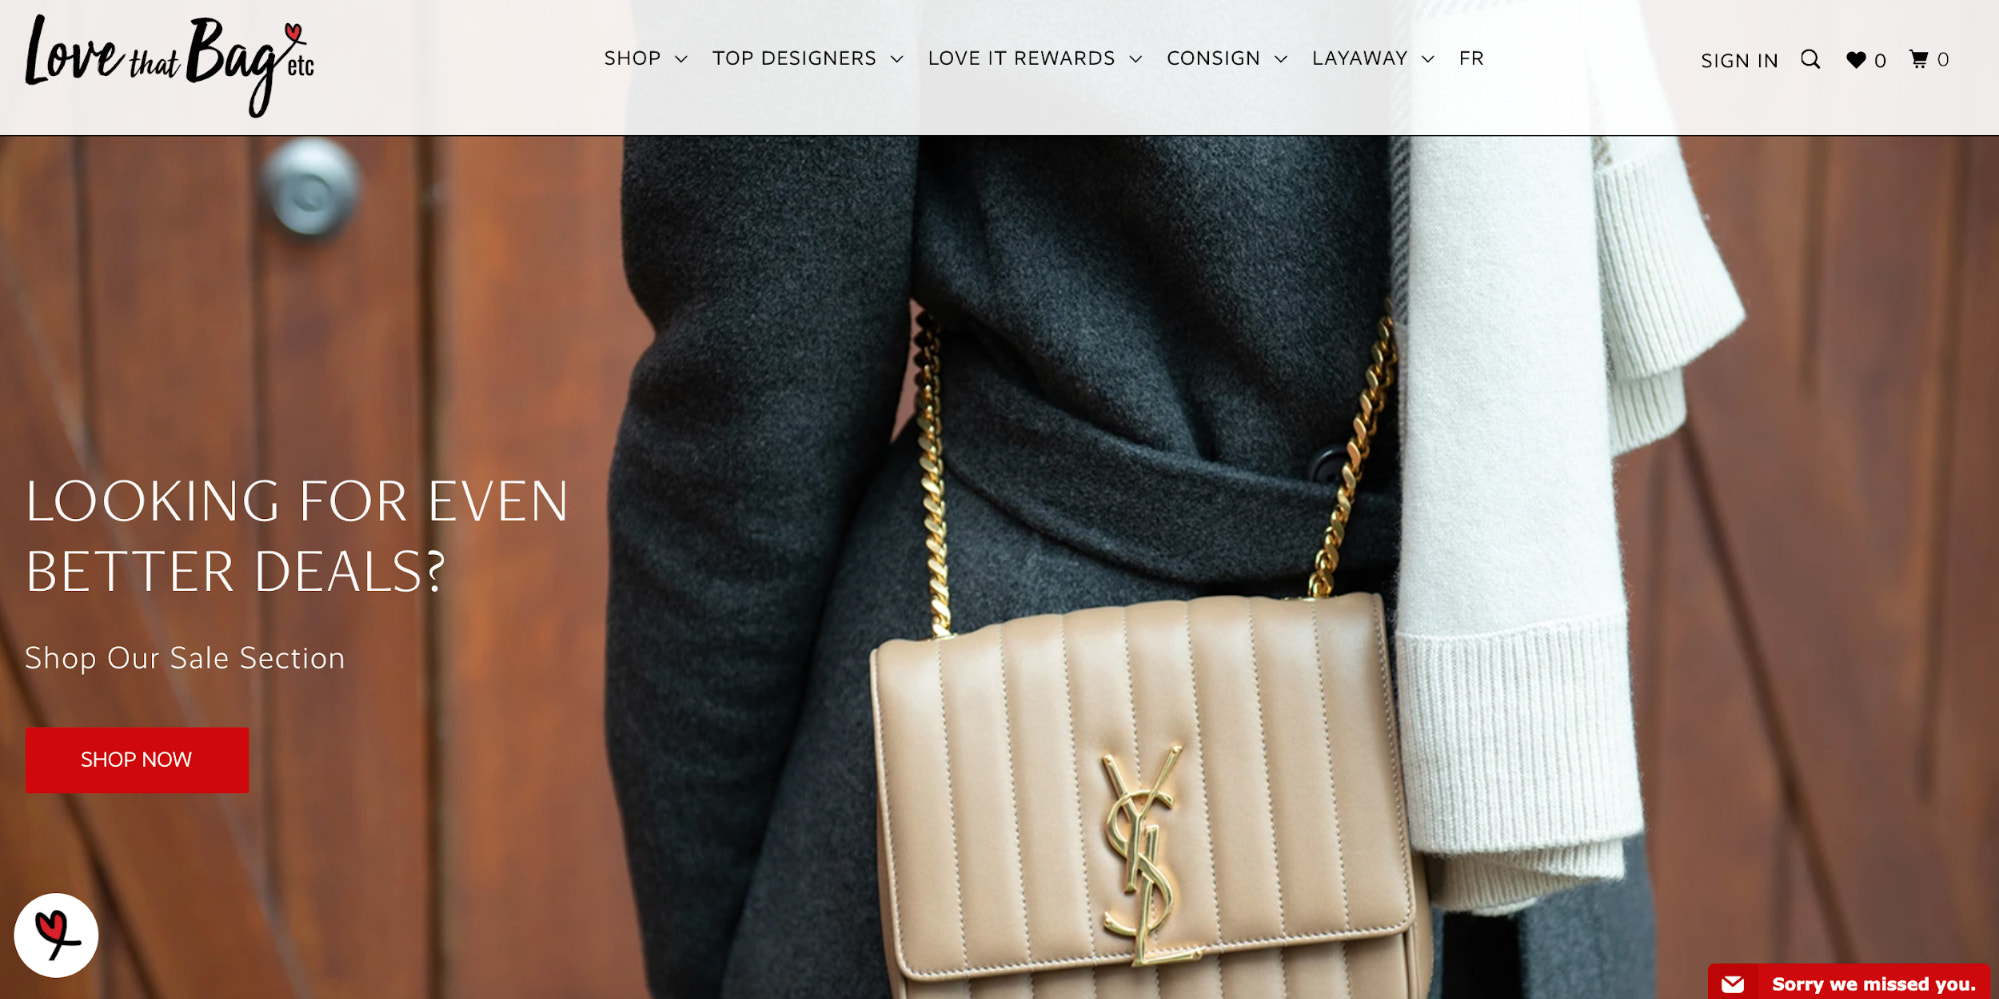 Love that Bag etc. homepage that features one of its high-end purses